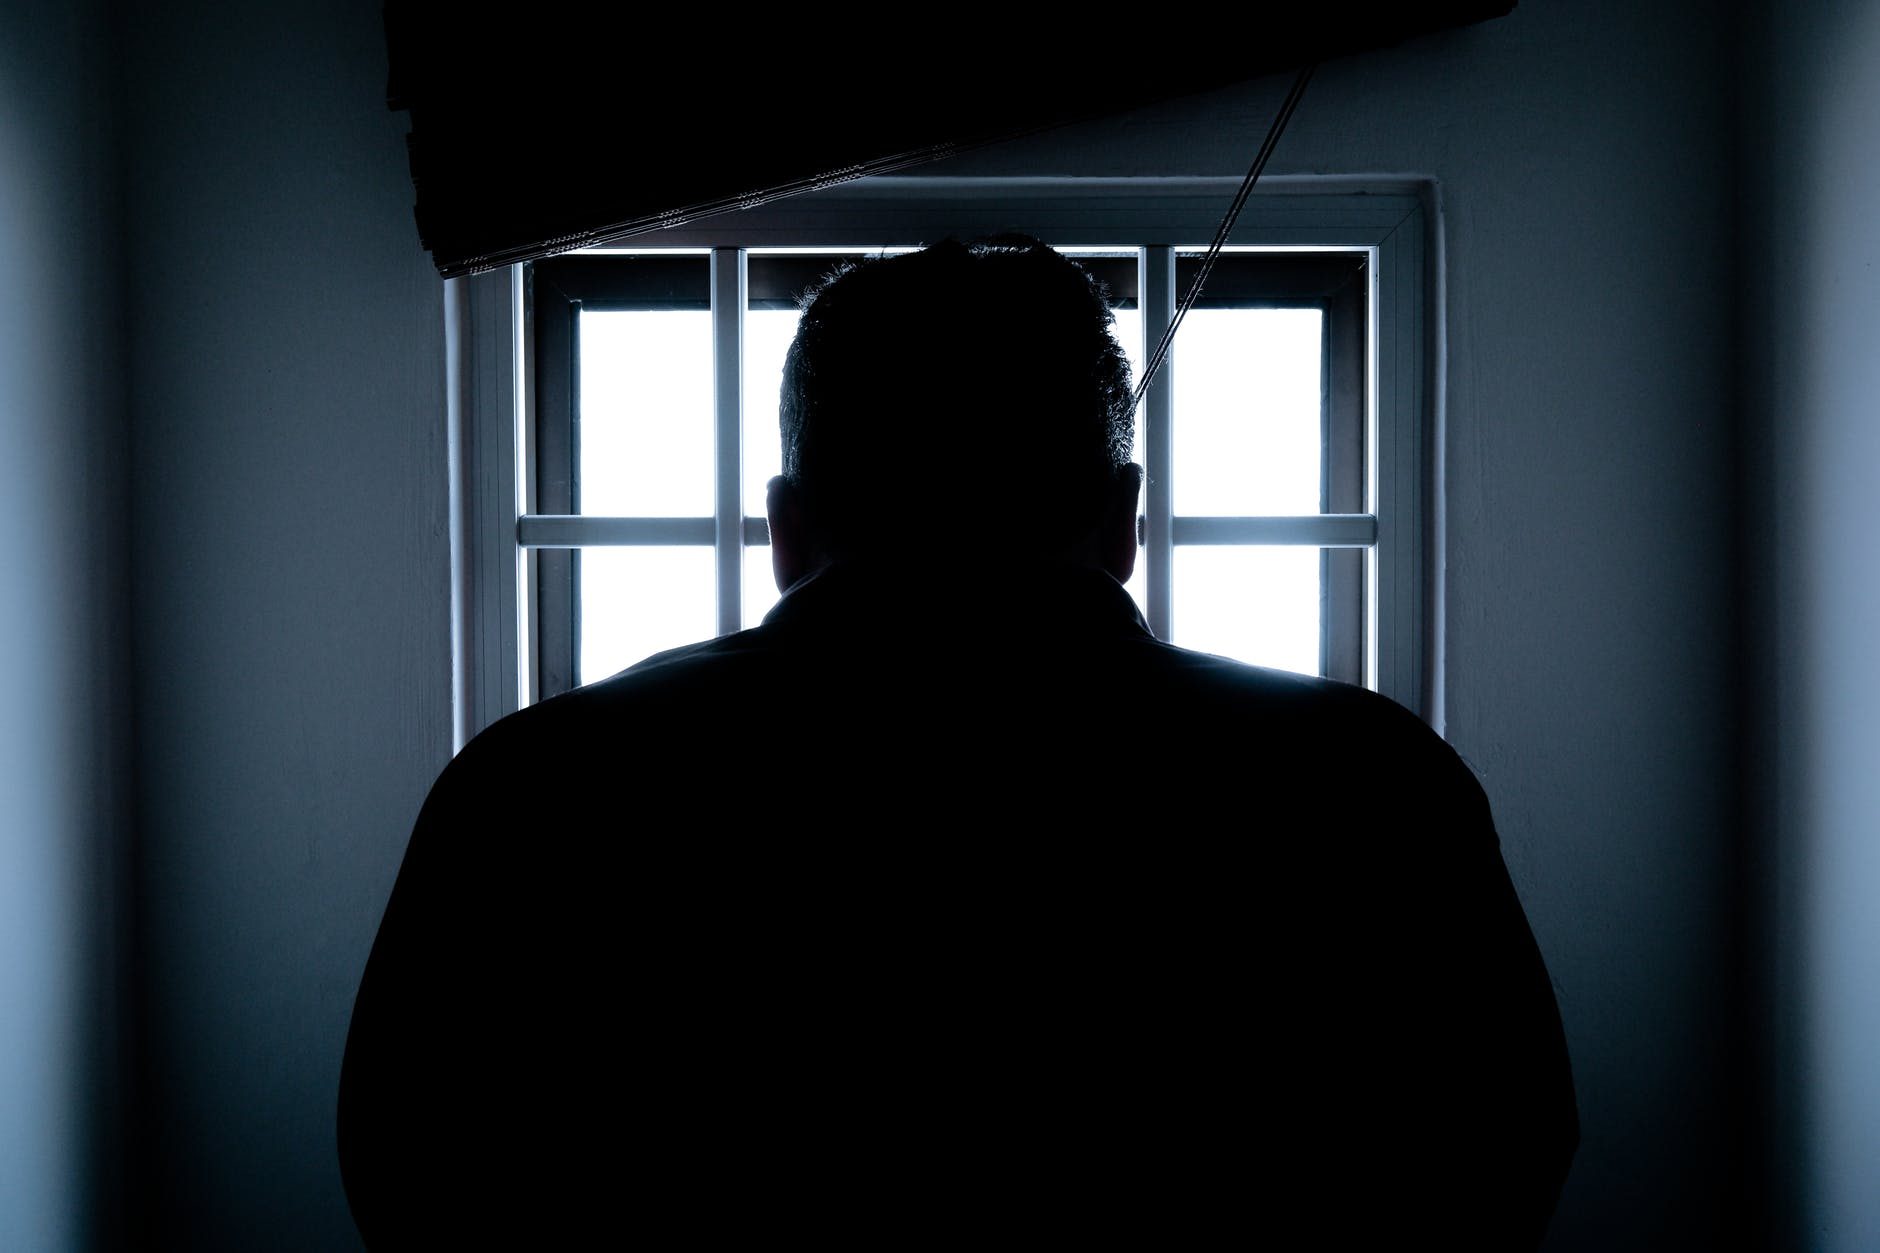 silhouette of a man in window